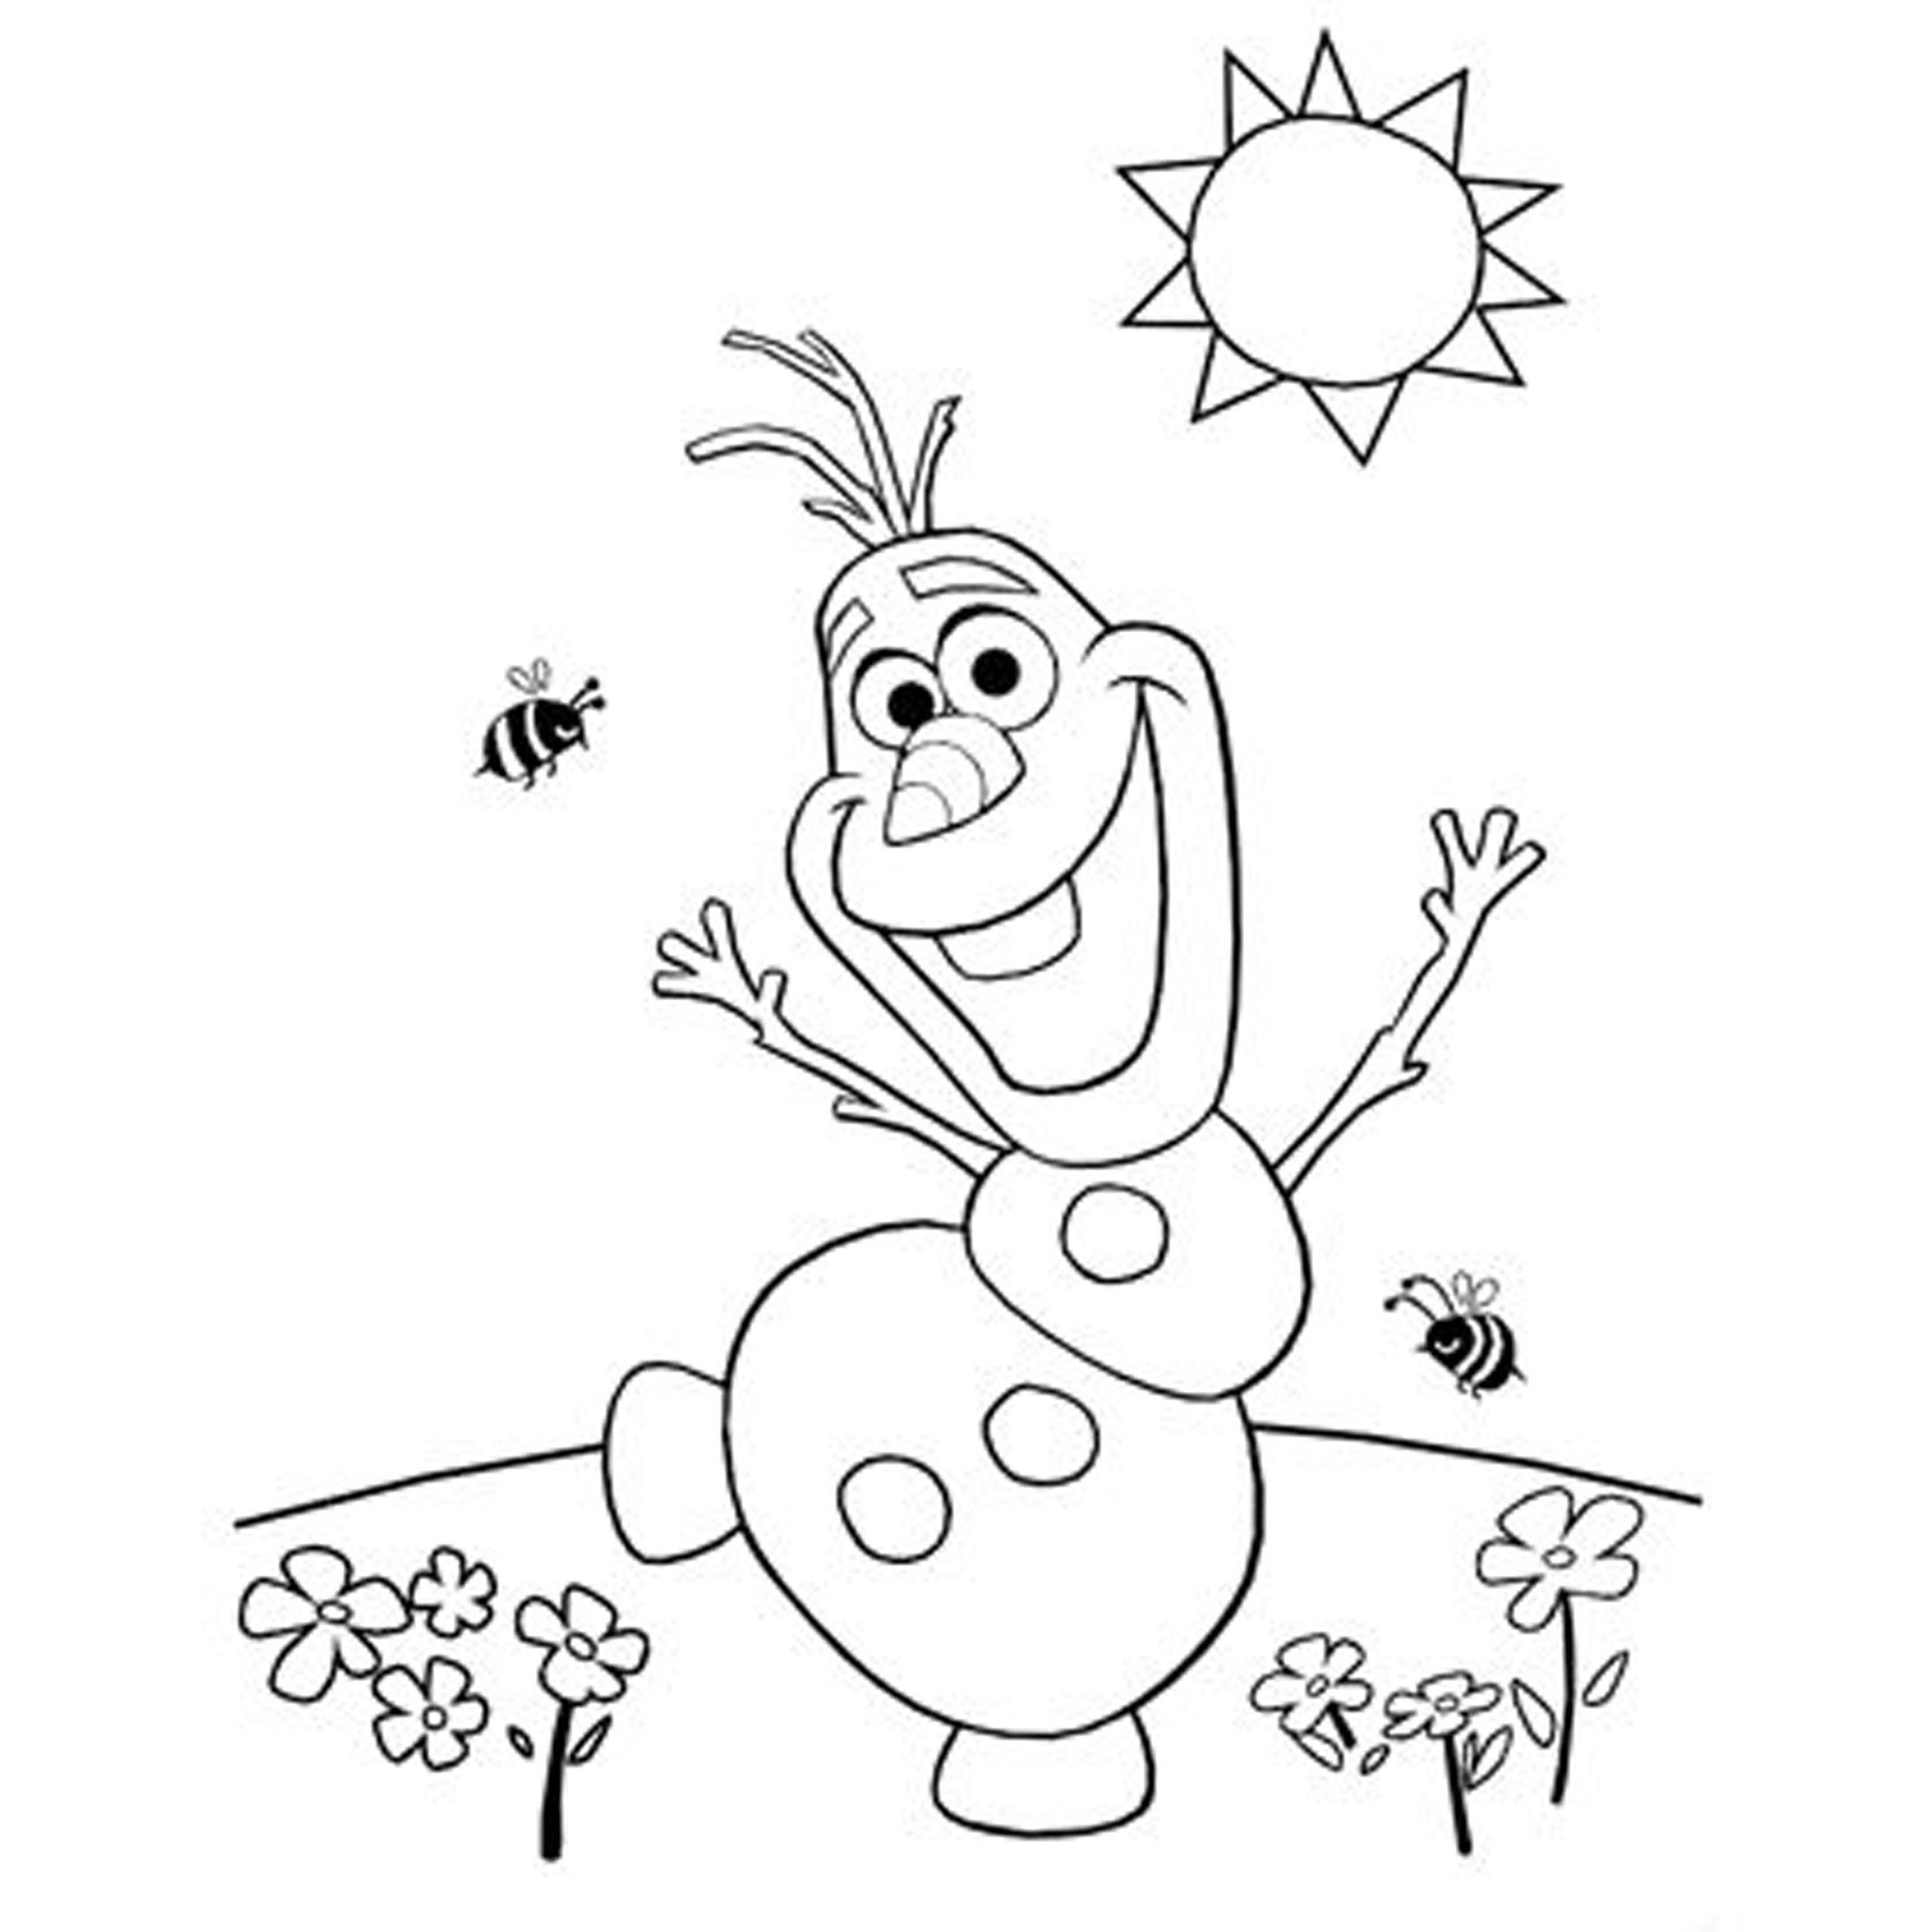 Free coloring pages frozen - Explore Frozen Coloring Pages And More